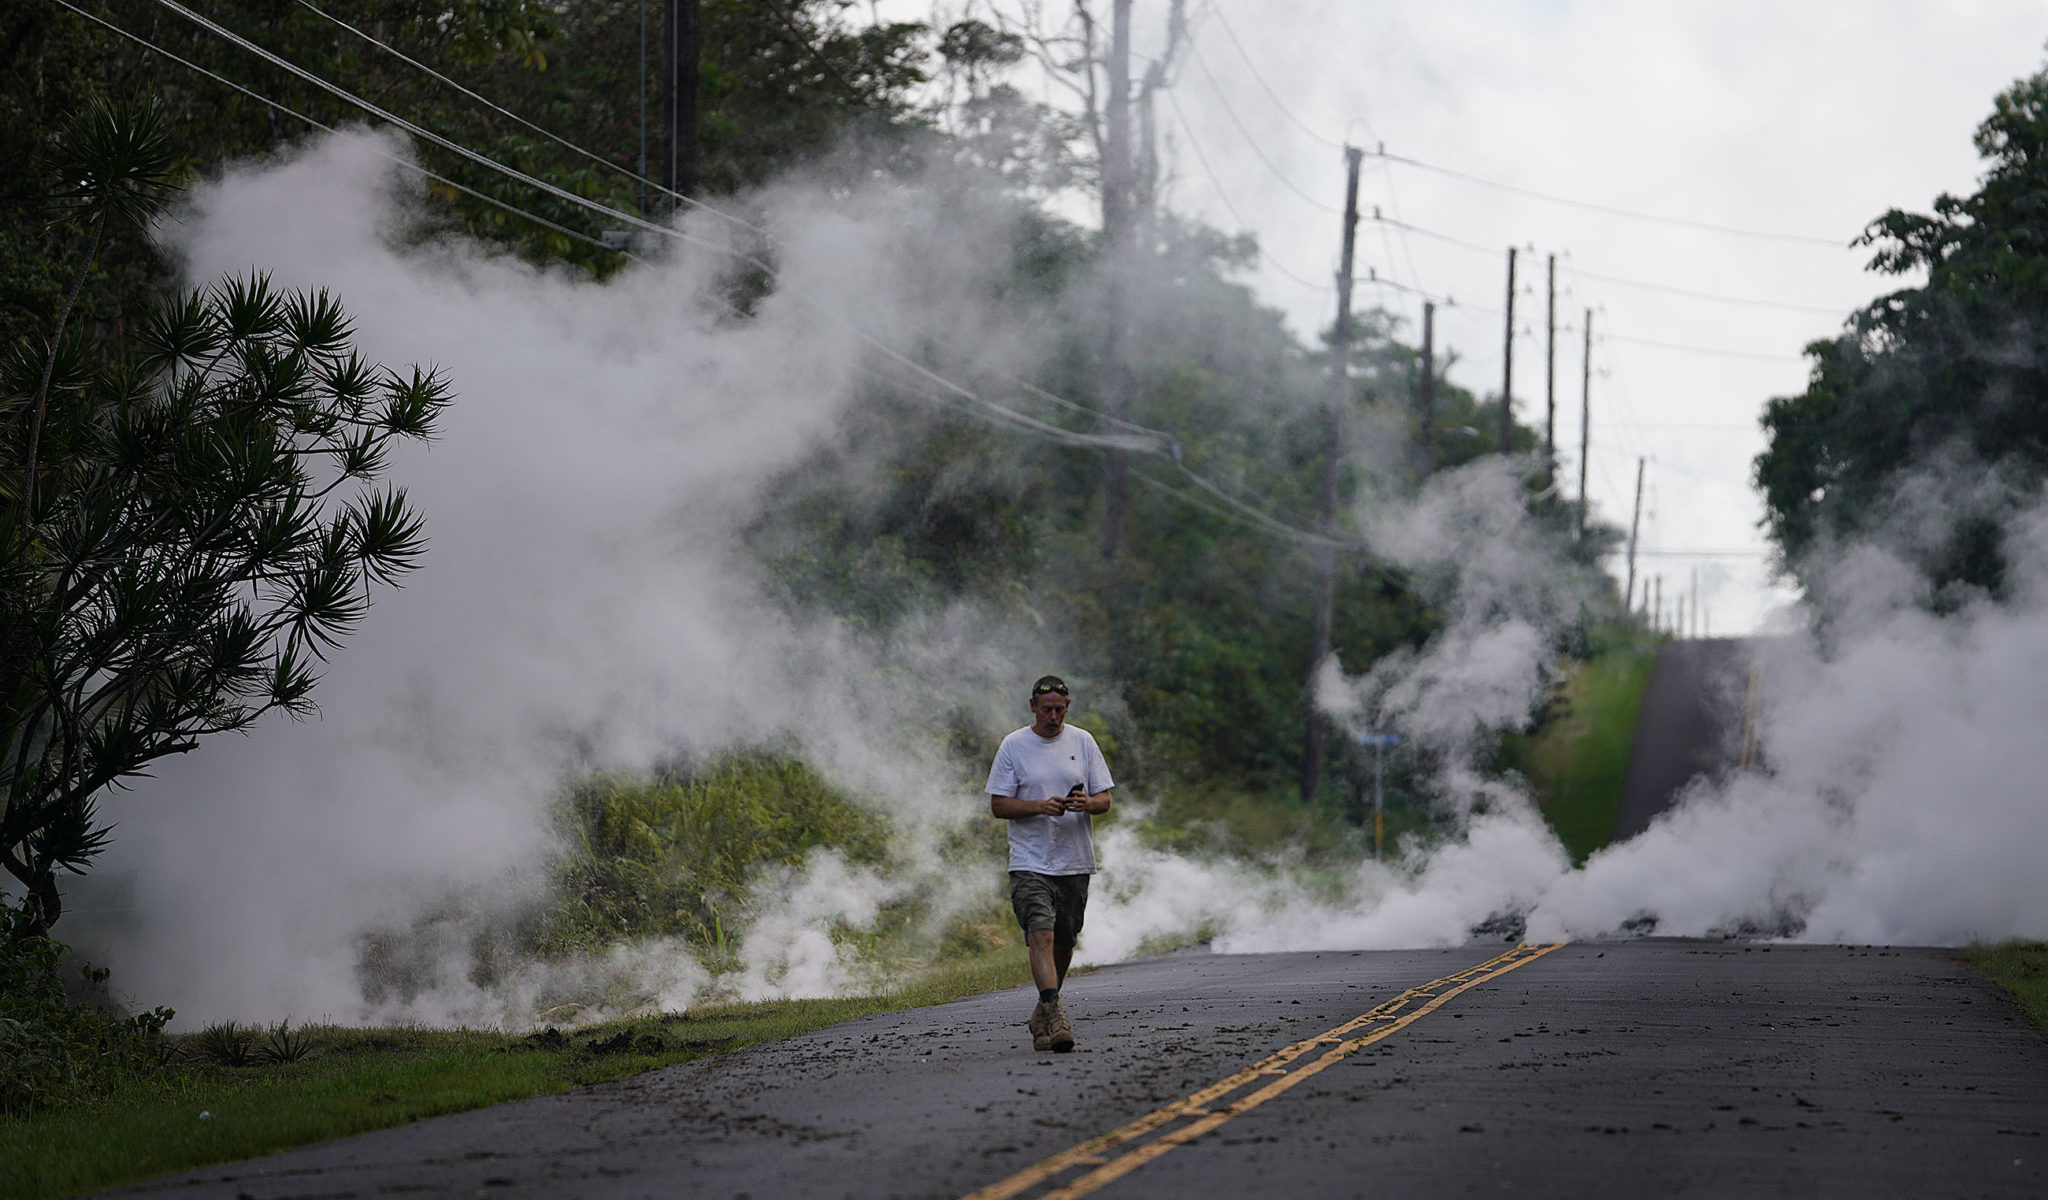 Roads inside Leilani Estate with smoke from cracked fissures as molten lava flows under heating up the surface in Pahoa, Hawaii.